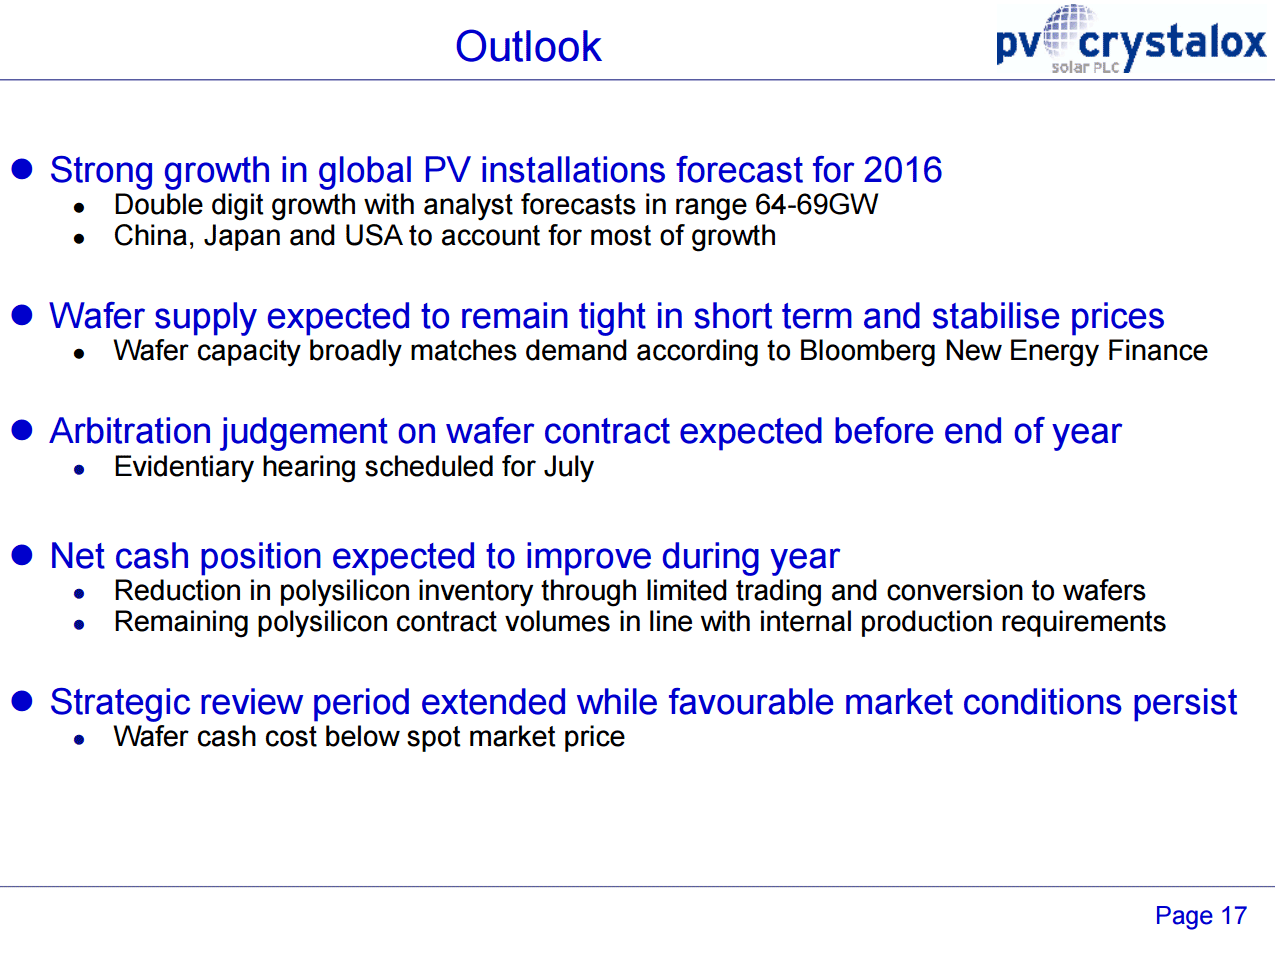 PV Crystalox outlook 2015